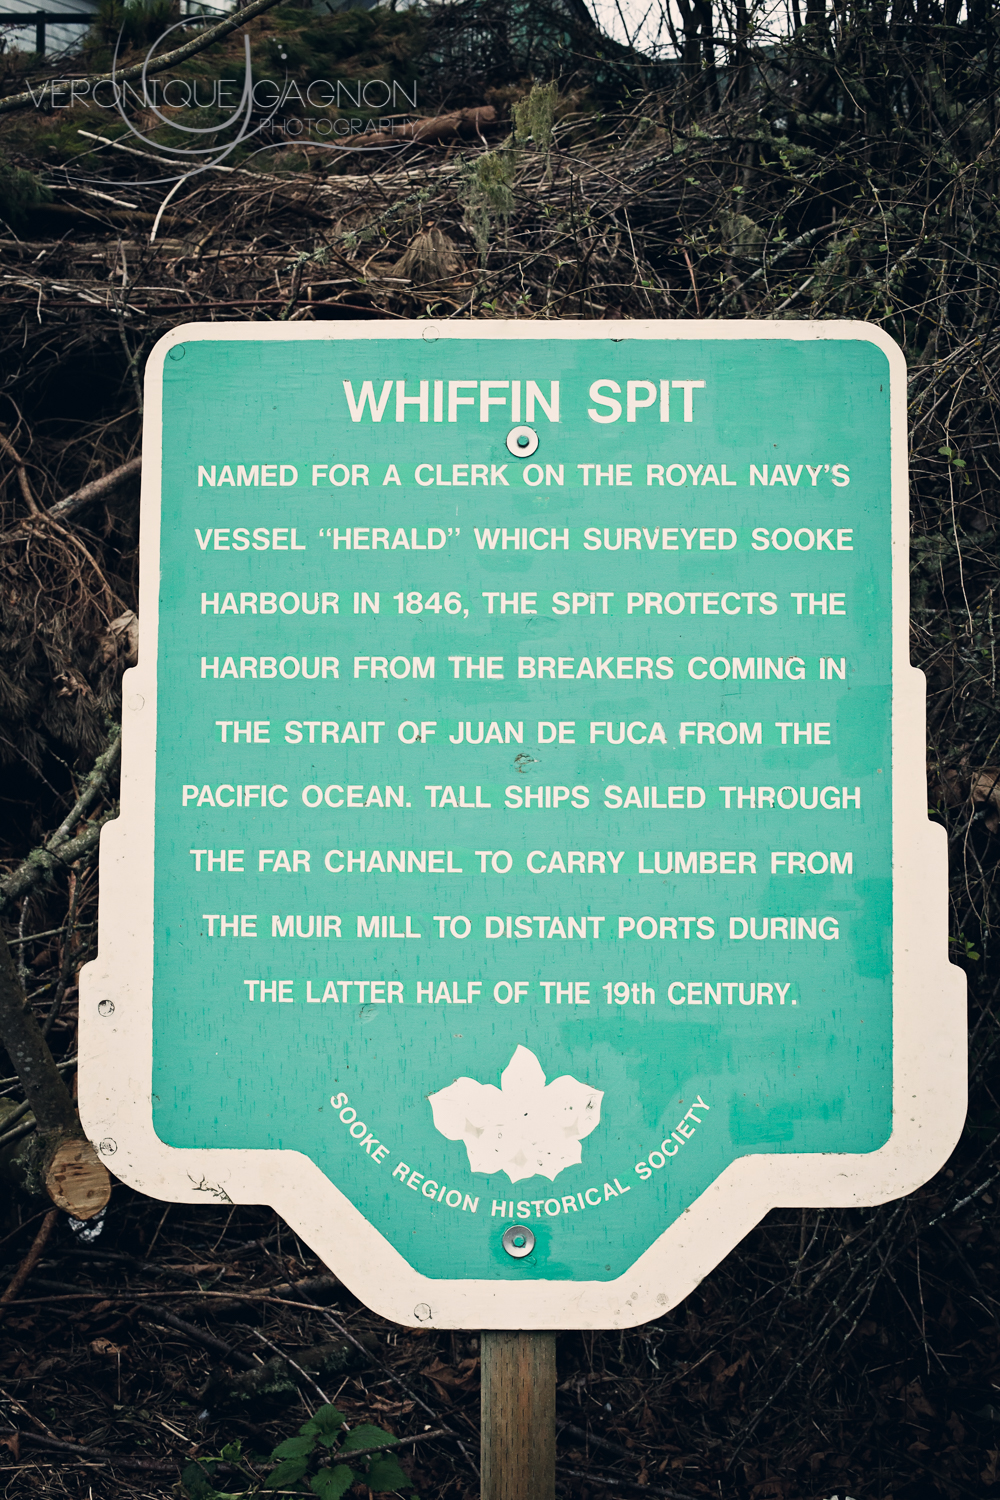 """Whiffin Spit: Named for a clerk on the royal navy's vessel """"Herald"""" which surveyed Sooke Harbour in 1846, the spit protects the harbour from the breakers coming in the Straight of Juan de Fuca from the Pacific Ocean. Tall ships sailed through the far channel to carry lumber from the muir to distant ports during the latter half of the 19th century."""